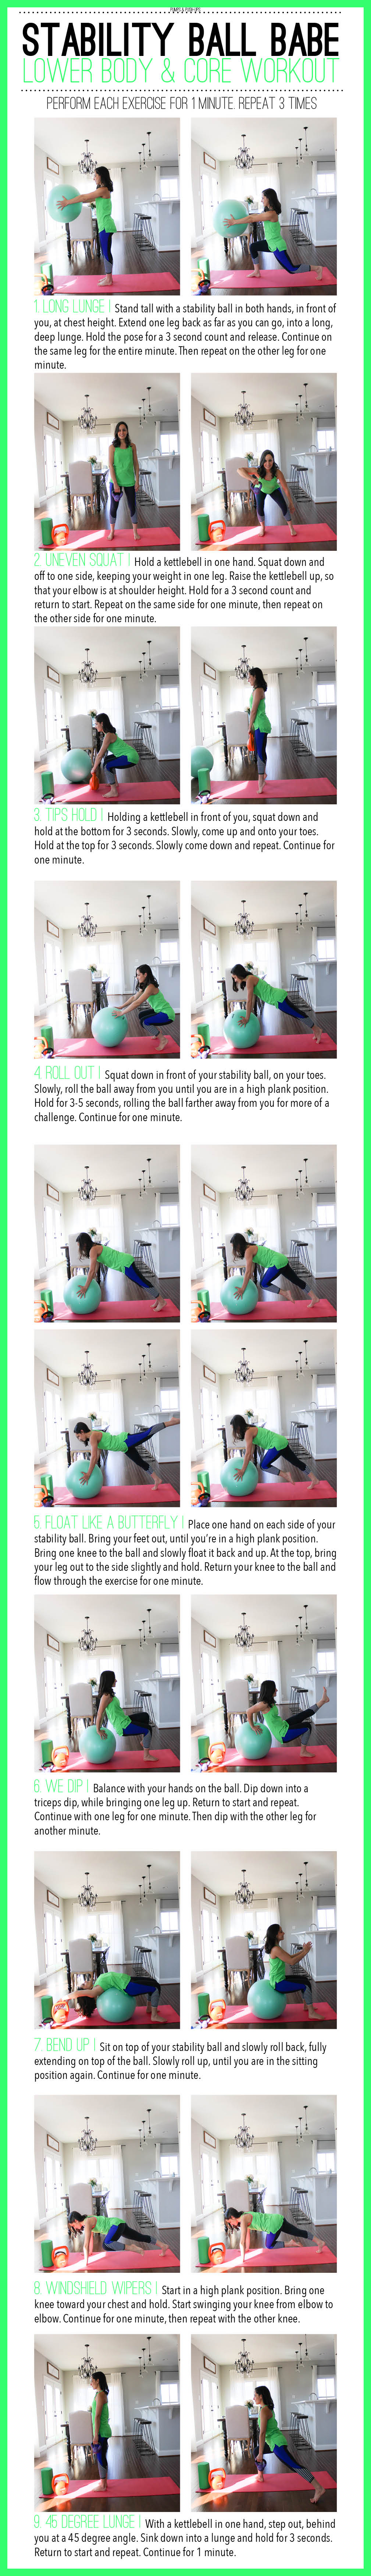 lower body and core workout using a stability ball and a kettlebell